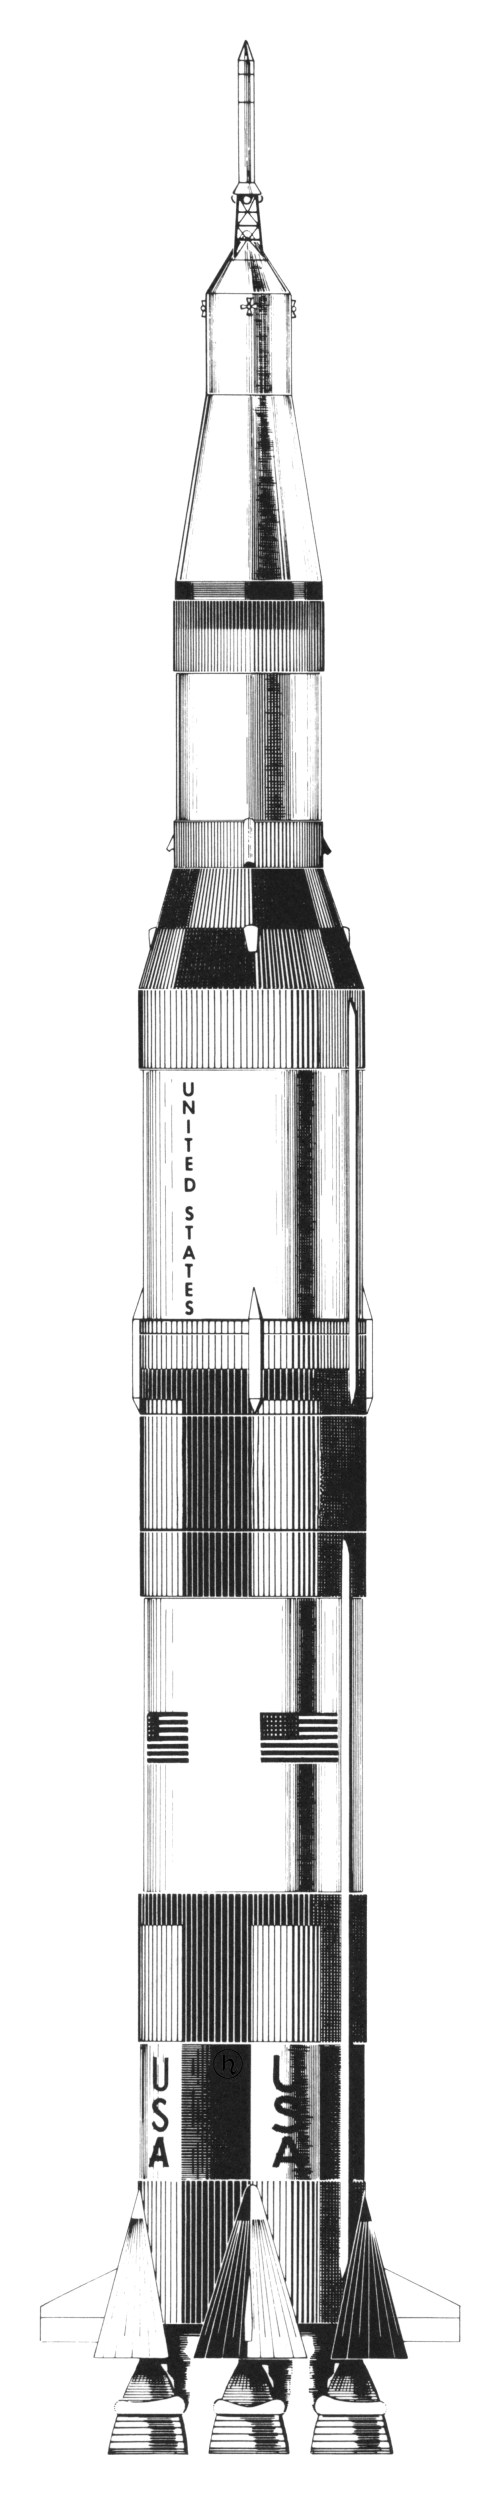 small resolution of saturn v diagram showing sa 510 apollo 15 s launch vehicle